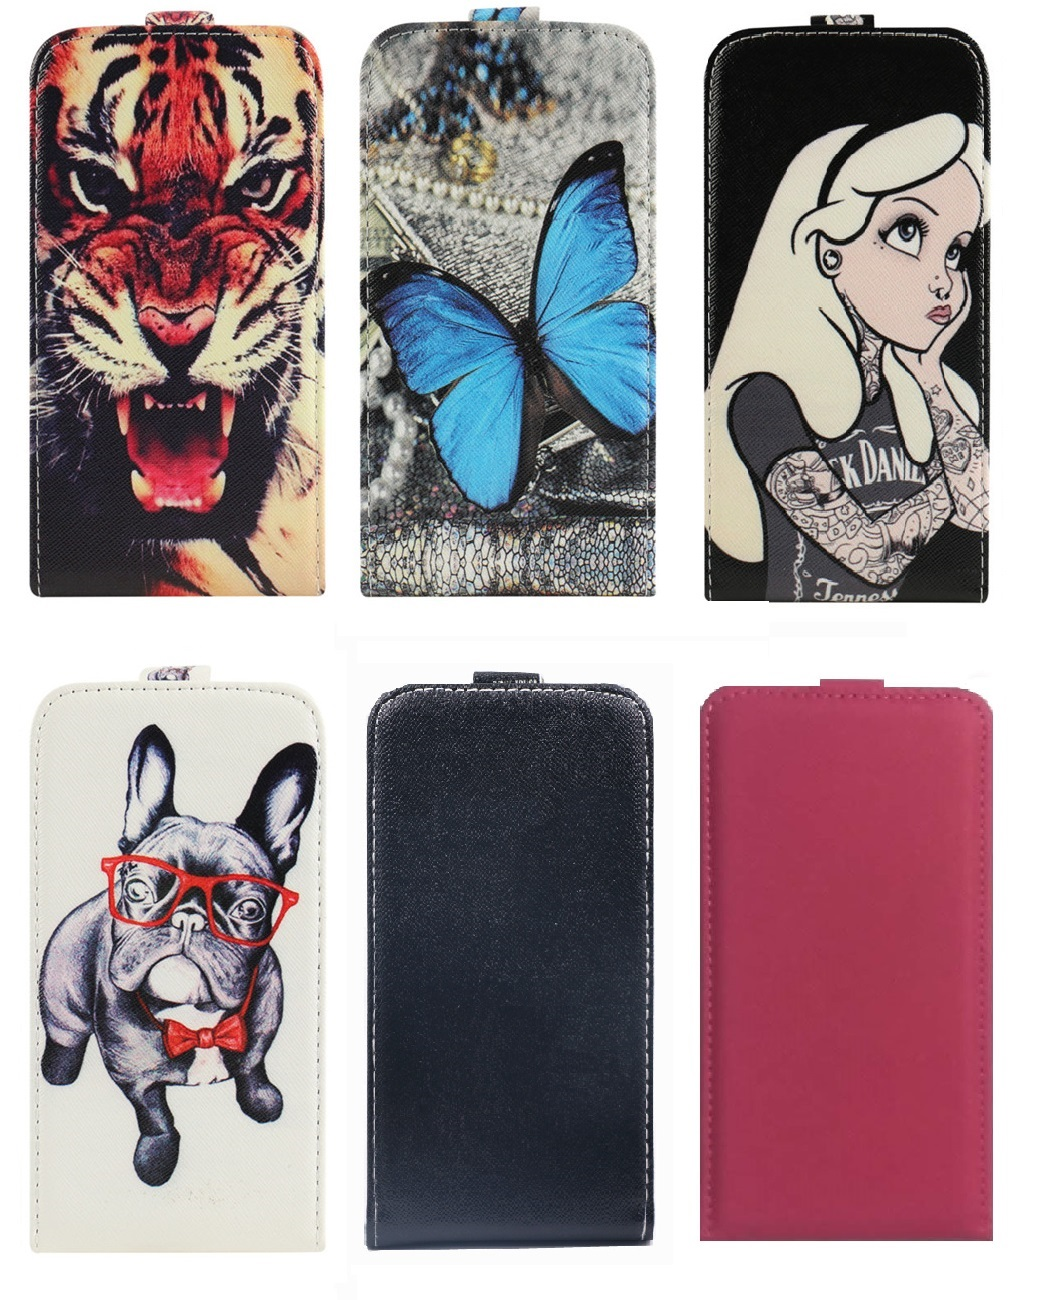 Yooyour Cover FOR Ark Benefit M503 M502 M501 A2 cover Fashion Case fashion printed case for Ark Benefit S502 FOR Ark Benefit M8 image